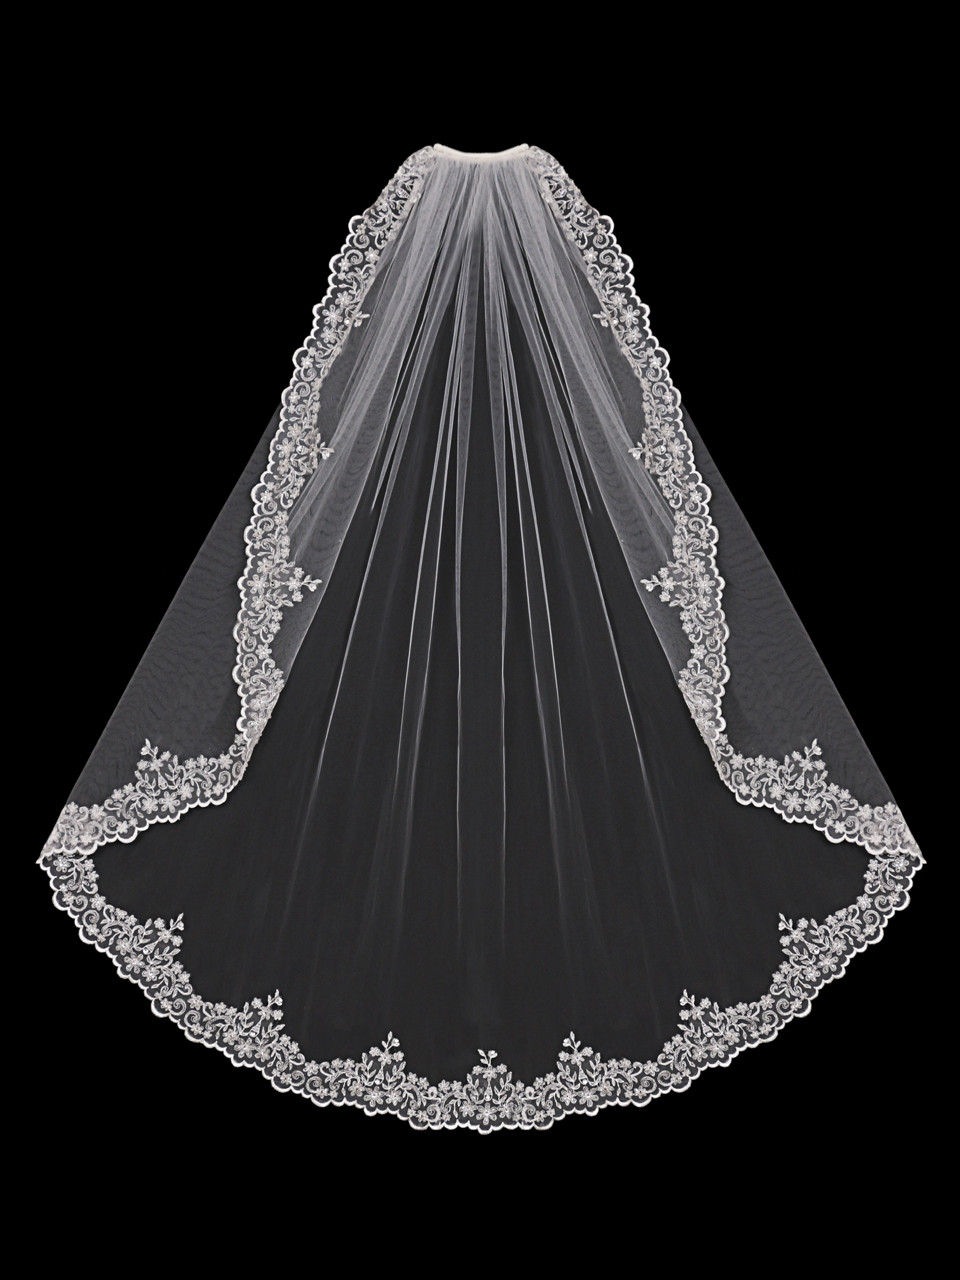 meet bridal veil singles Your dream dress offers 100% authentic designer discount bridal jewelry and wedding brooches at discounted prices we sell high end bridal sample gowns and accessories at drastically reduced prices.